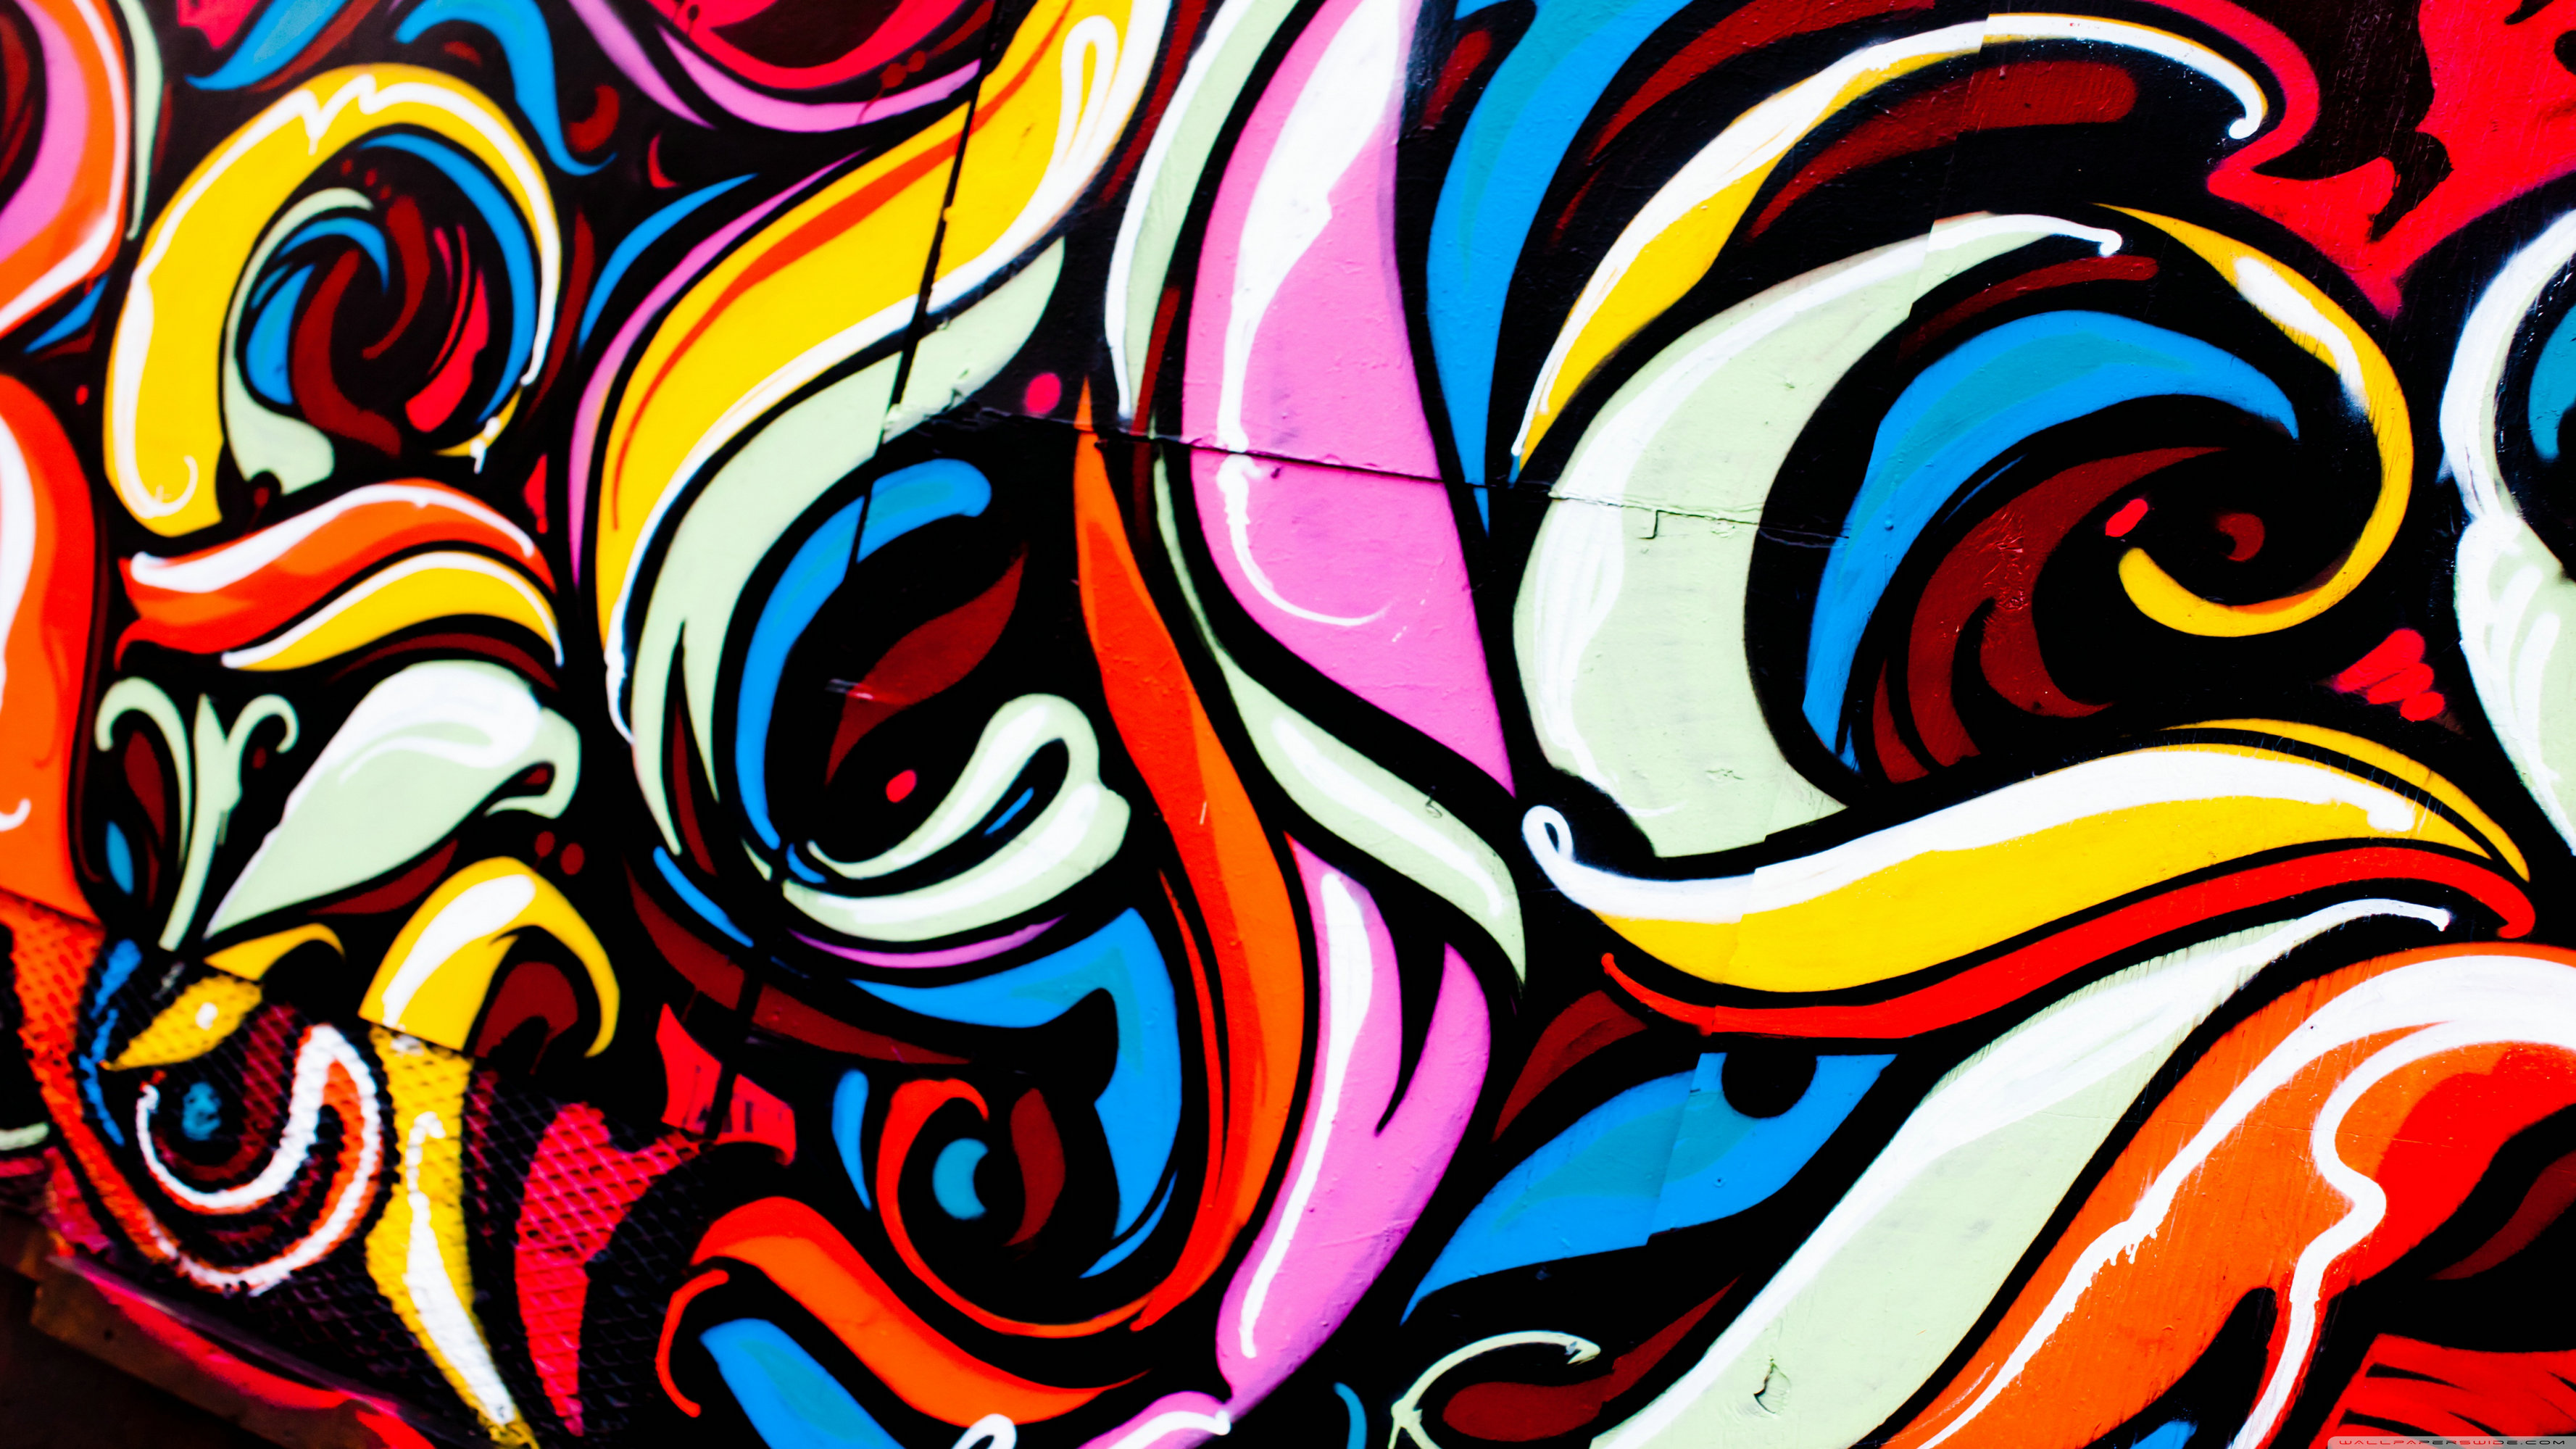 Top Graffiti Wallpapers 37 Design Backgrund For Dekstop wfz